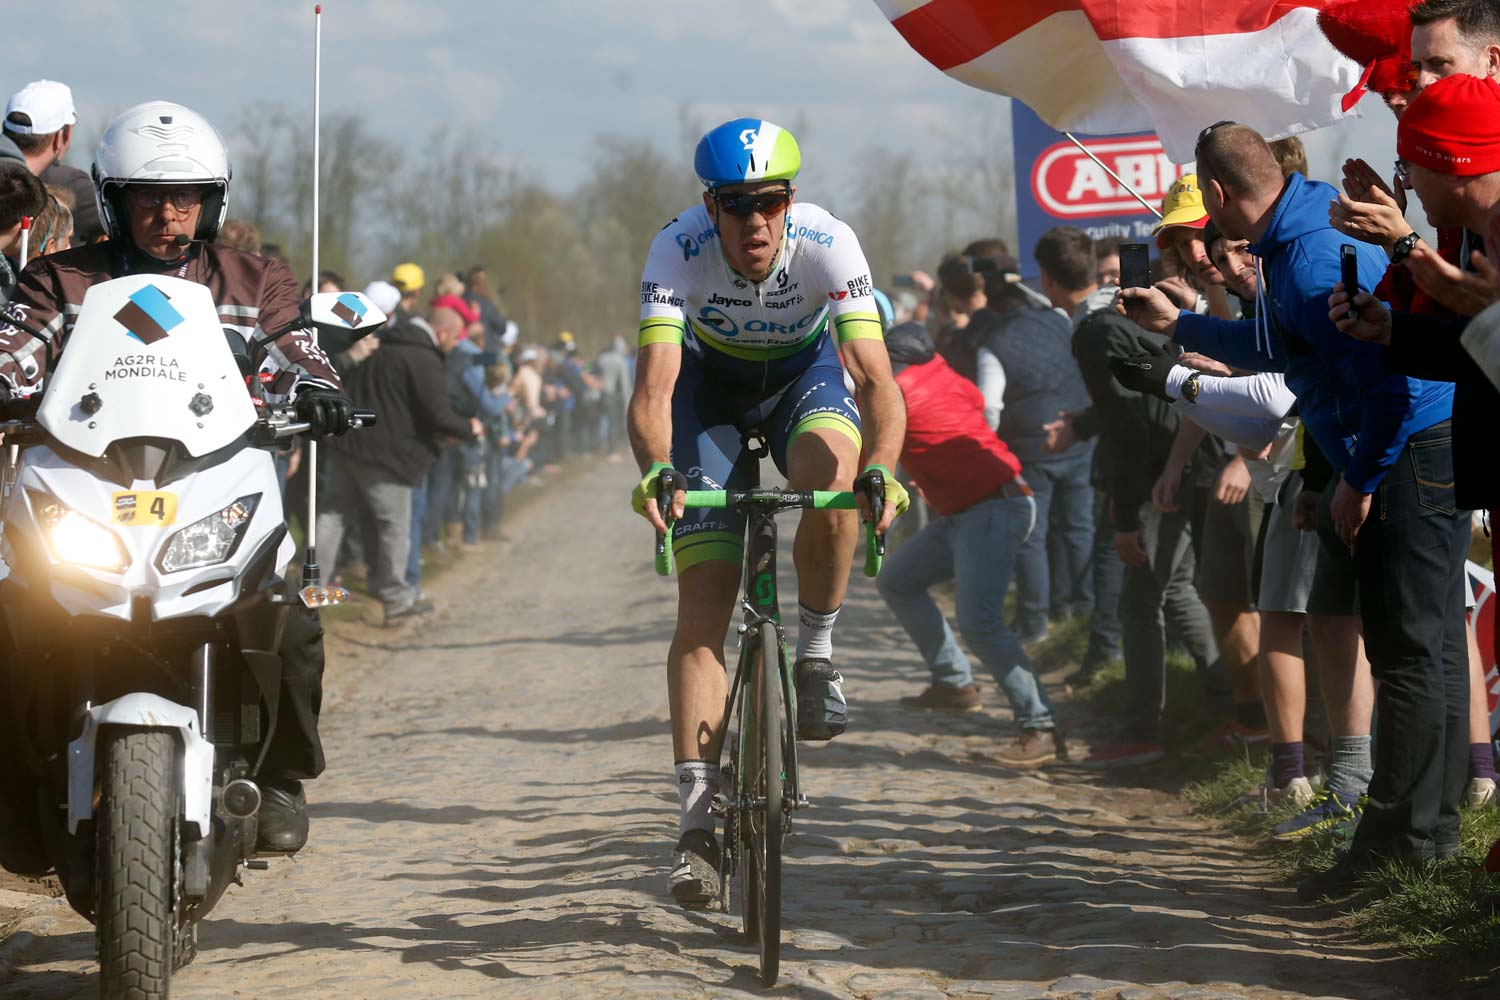 Point P Roubaix Paris Roubaix Gallery Of The Last 20 Years Ride Media